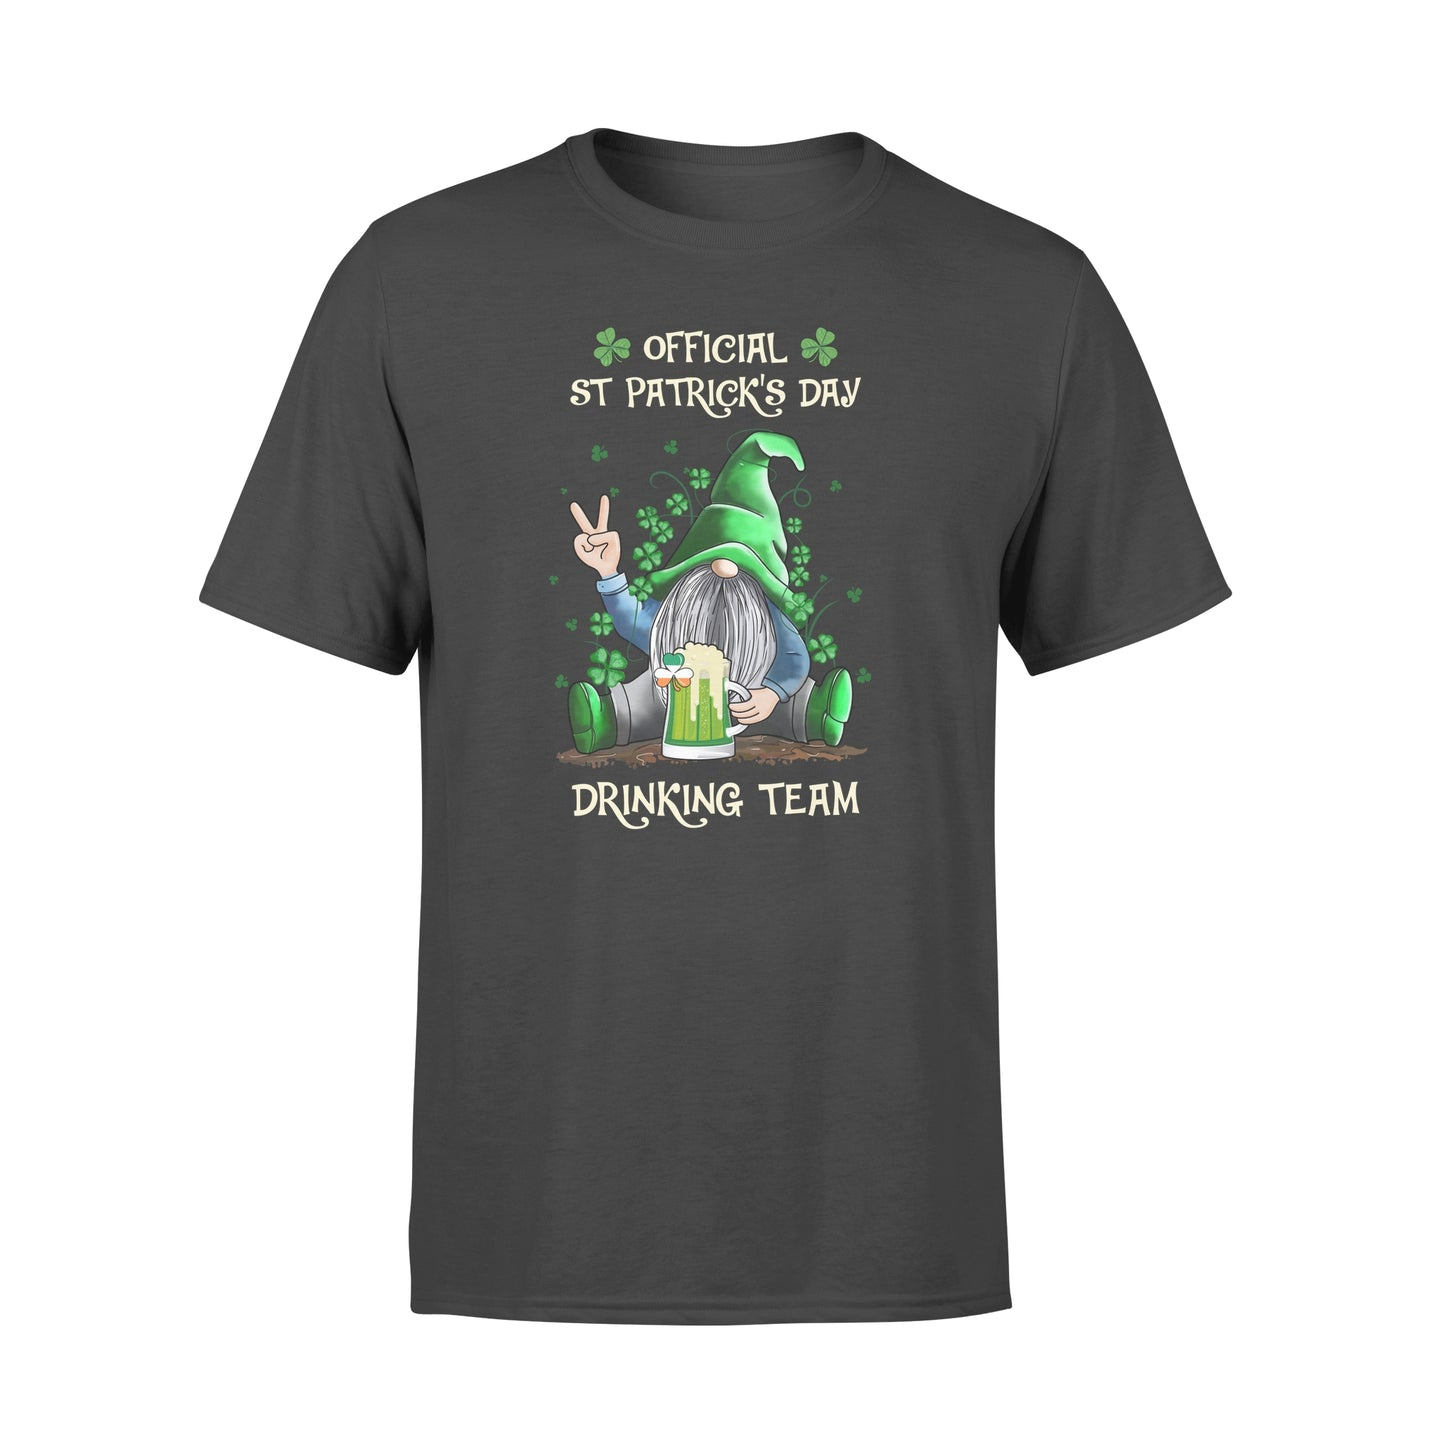 Cool Gnome Drink Beer Team St Patrick's Day Shirt Irish Lucky Shamrock - Standard T-shirt